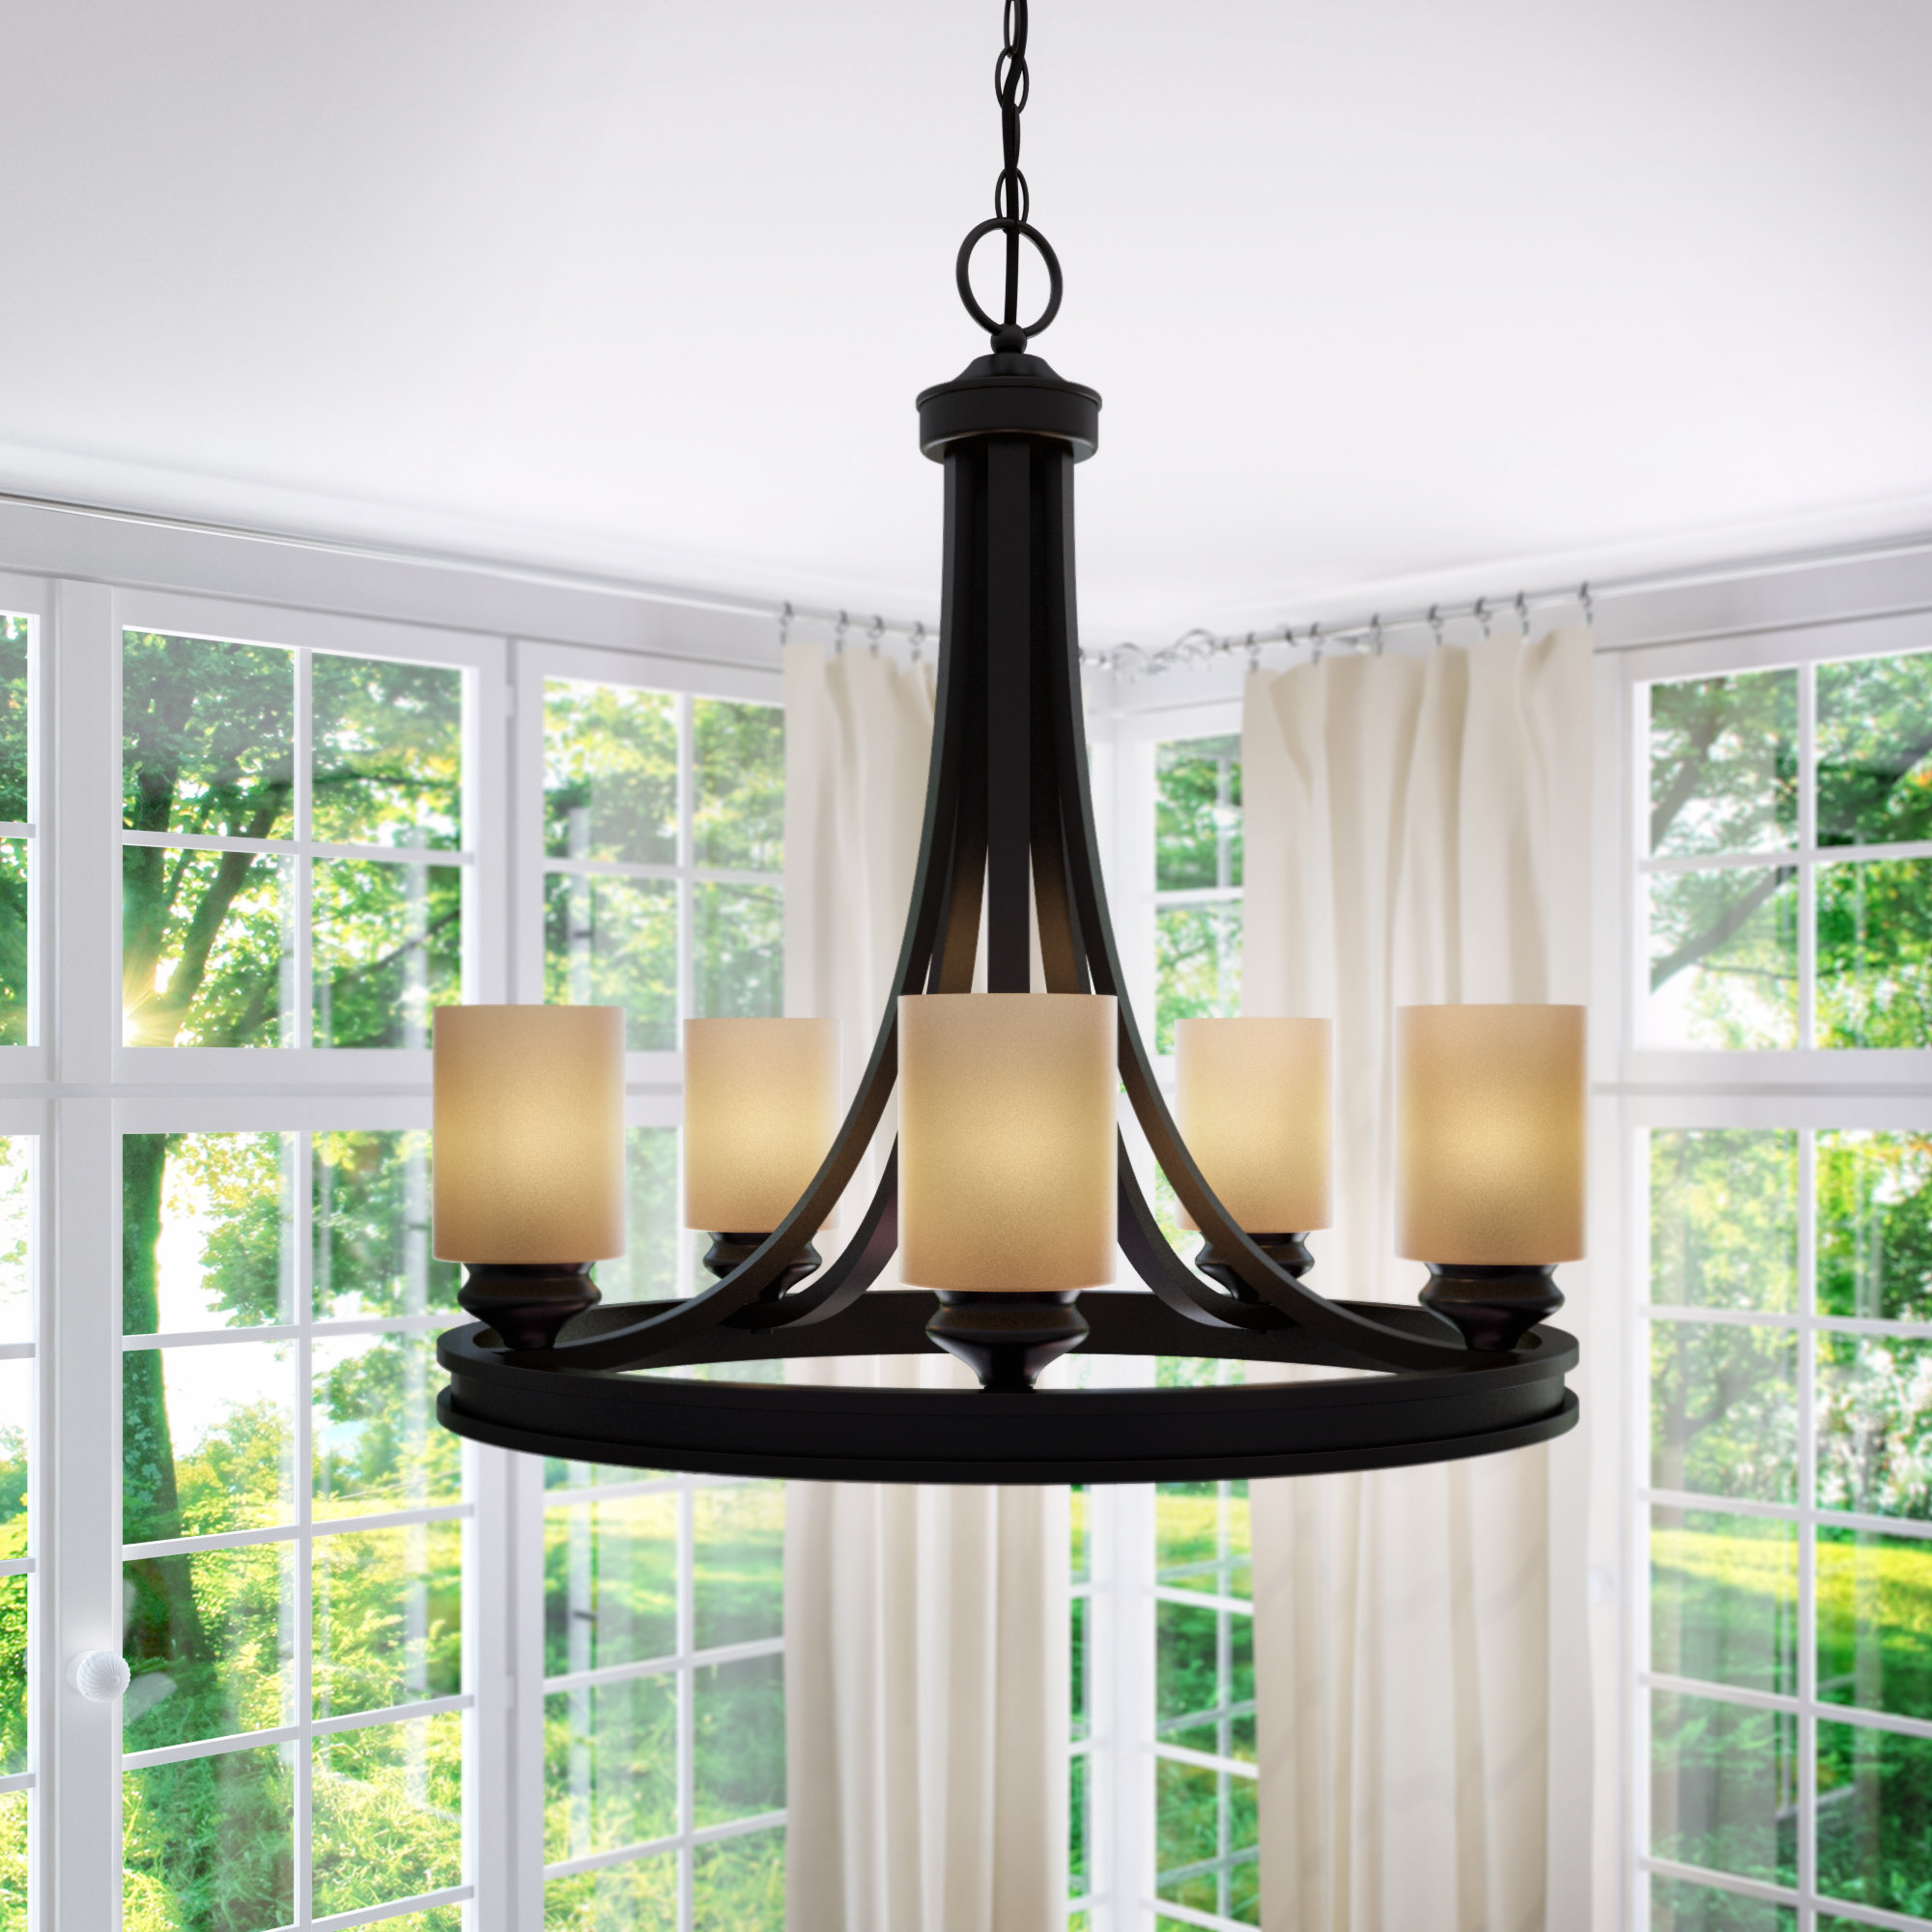 Swinford 5-Light Wagon Wheel Chandelier pertaining to Crofoot 5-Light Shaded Chandeliers (Image 25 of 30)